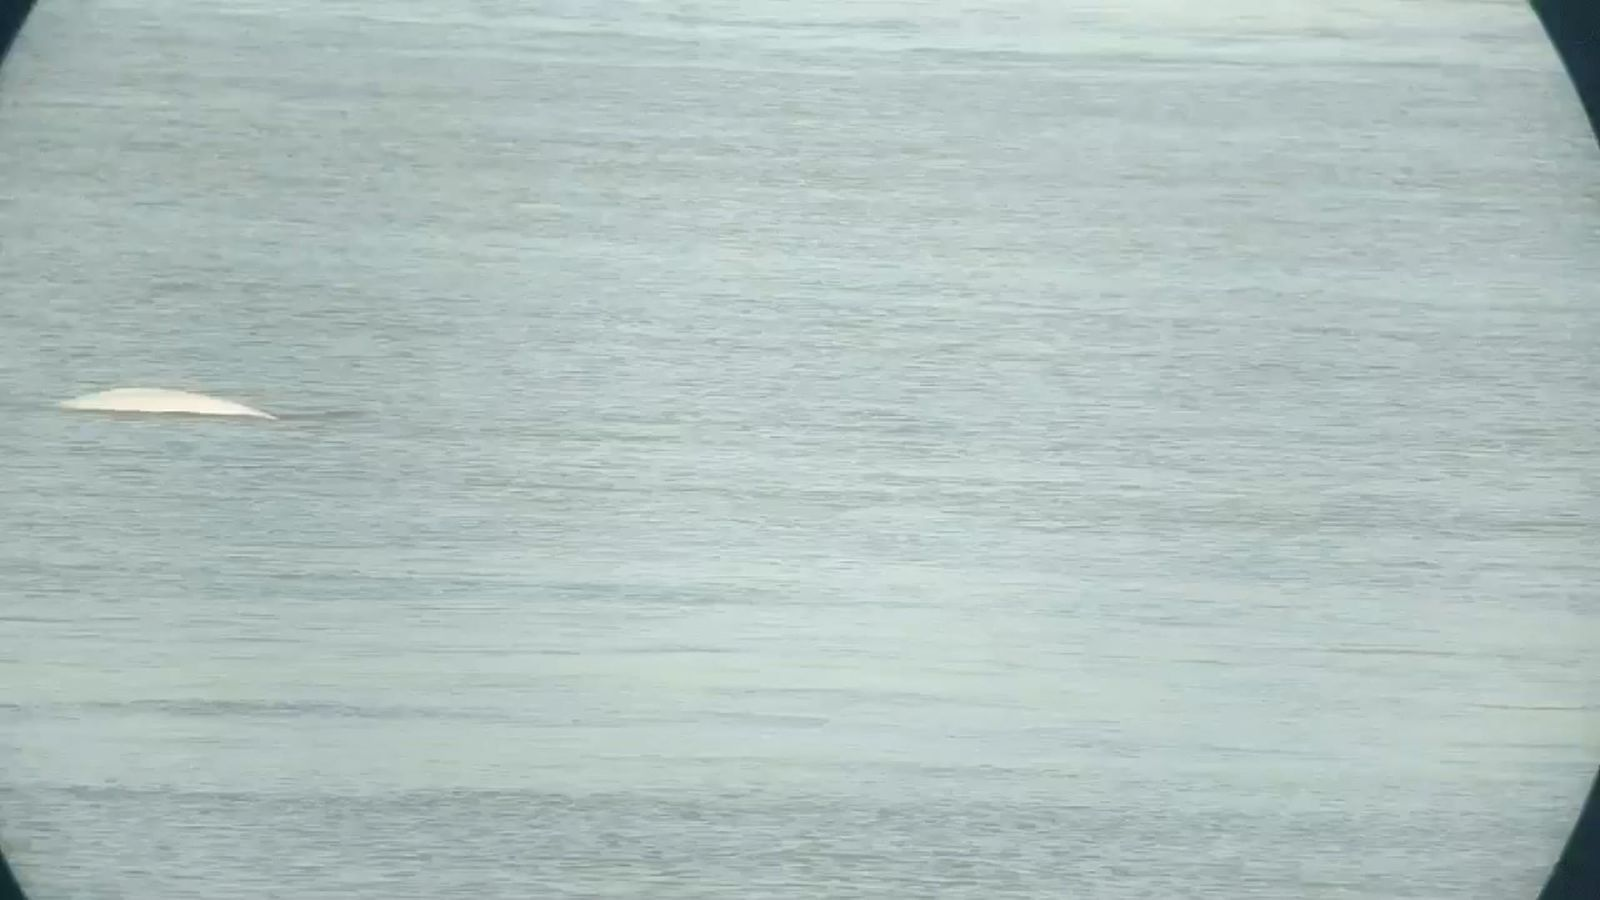 RSPCA investigating reports of whale sighting in Thames